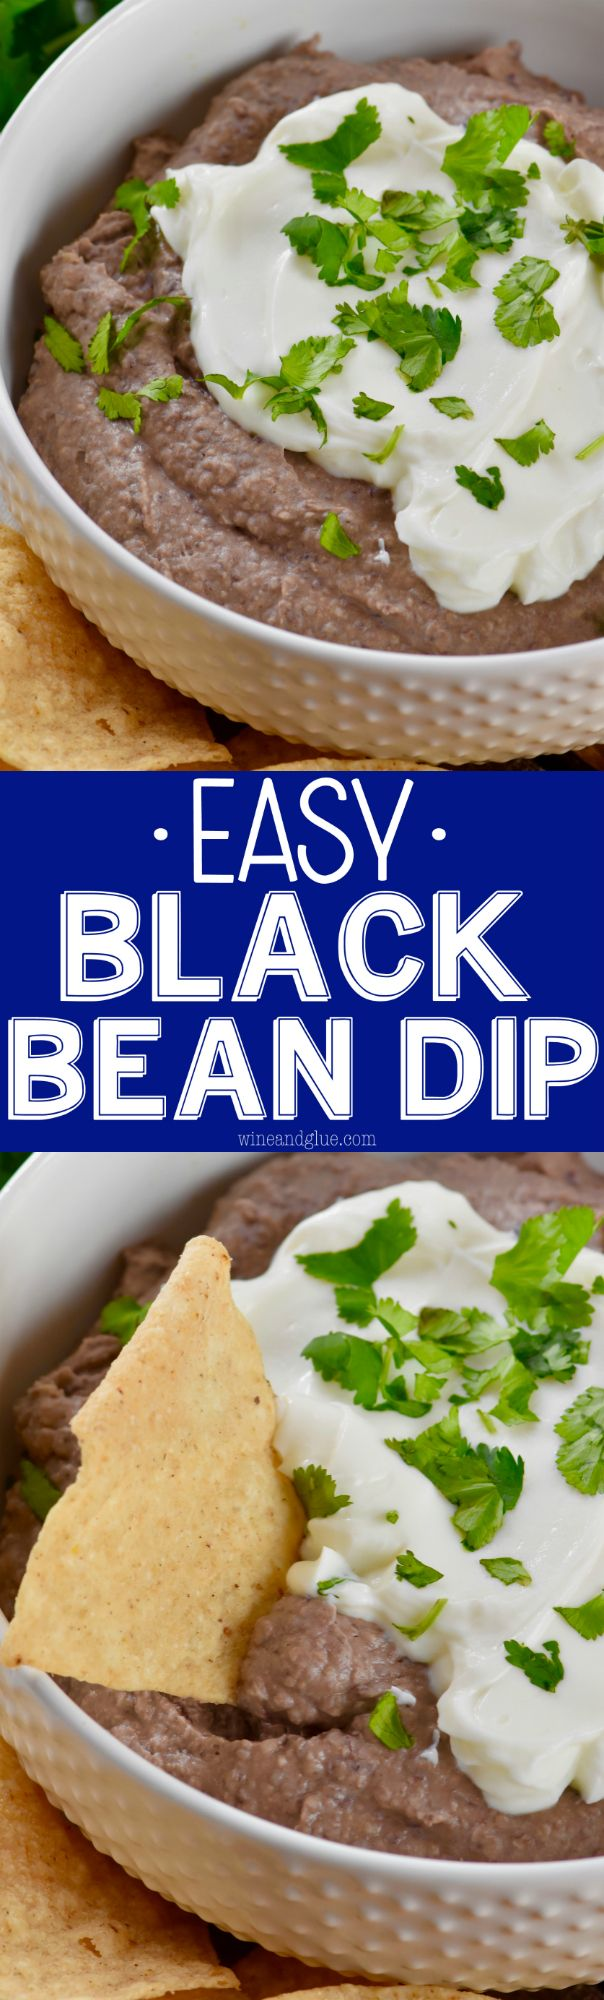 This Easy Black Bean Dip comes together super fast in a food processor or blender, and is full of delicious flavor!